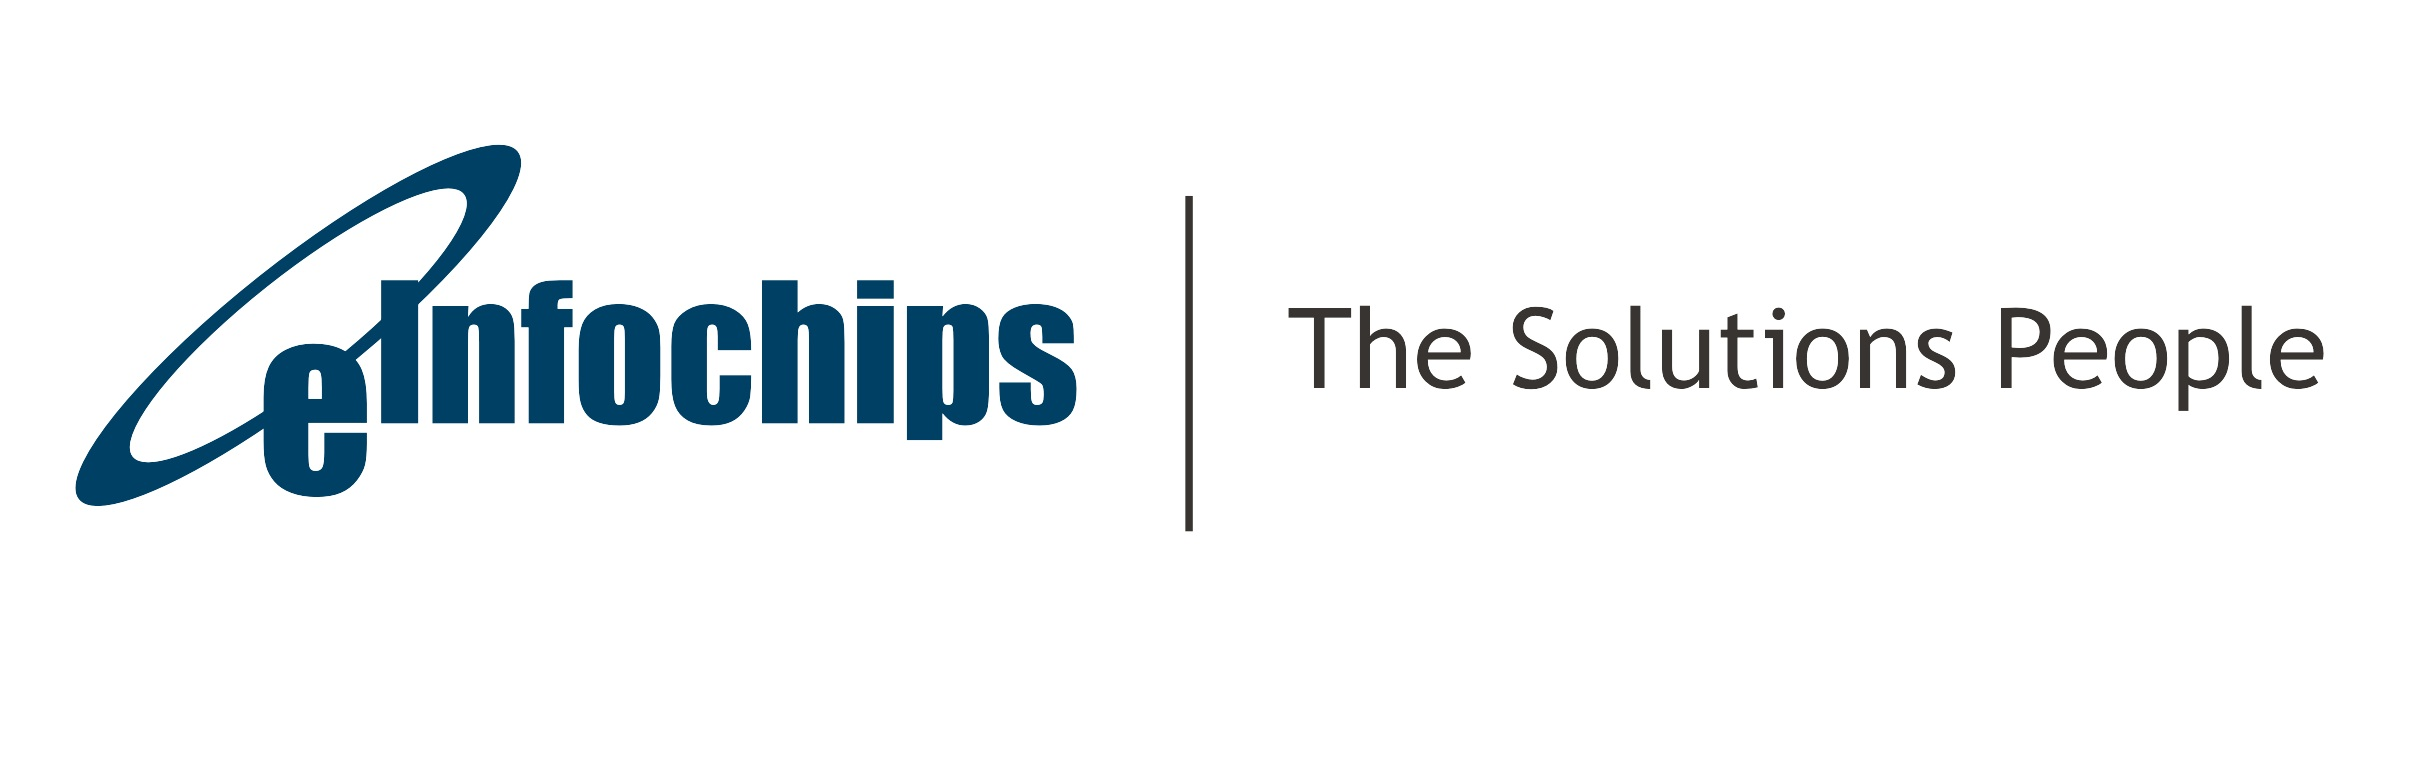 Review on EINFOCHIPS LTD - Best company to work in the industry ...